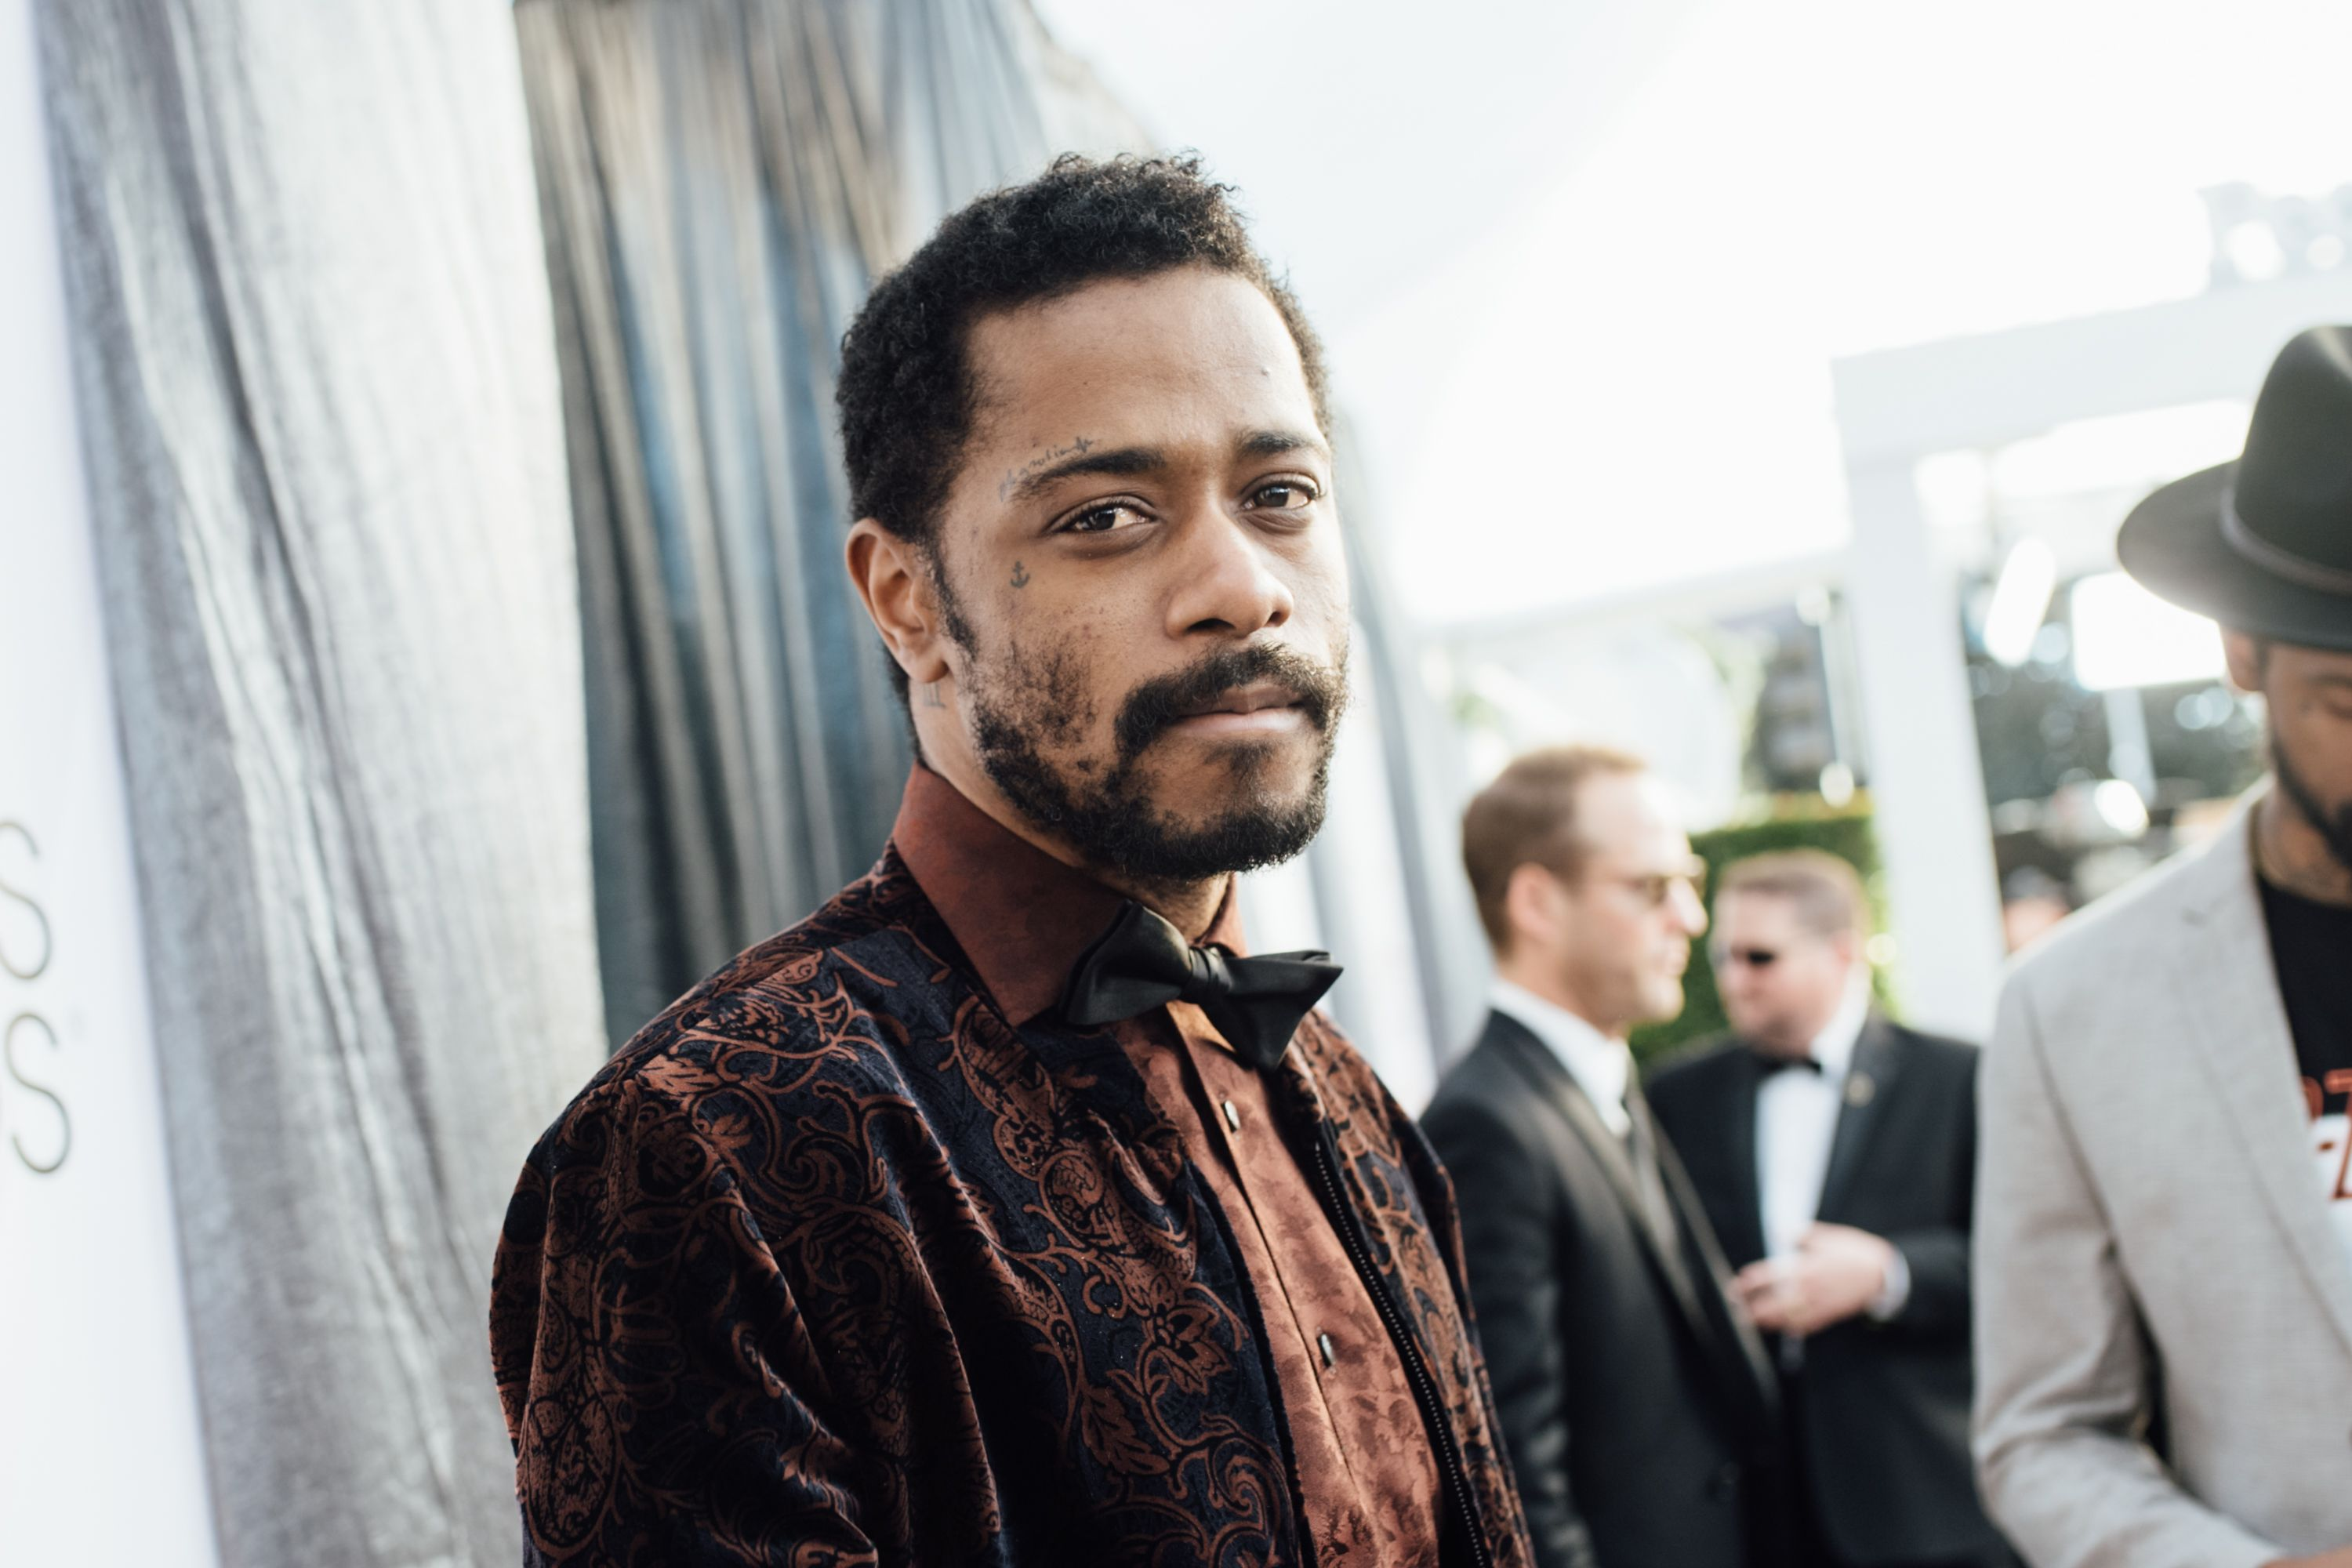 Lakeith Stanfield at the 25th annual Screen Actors Guild Awards in January 2019 in Los Angeles | Source: Getty Images